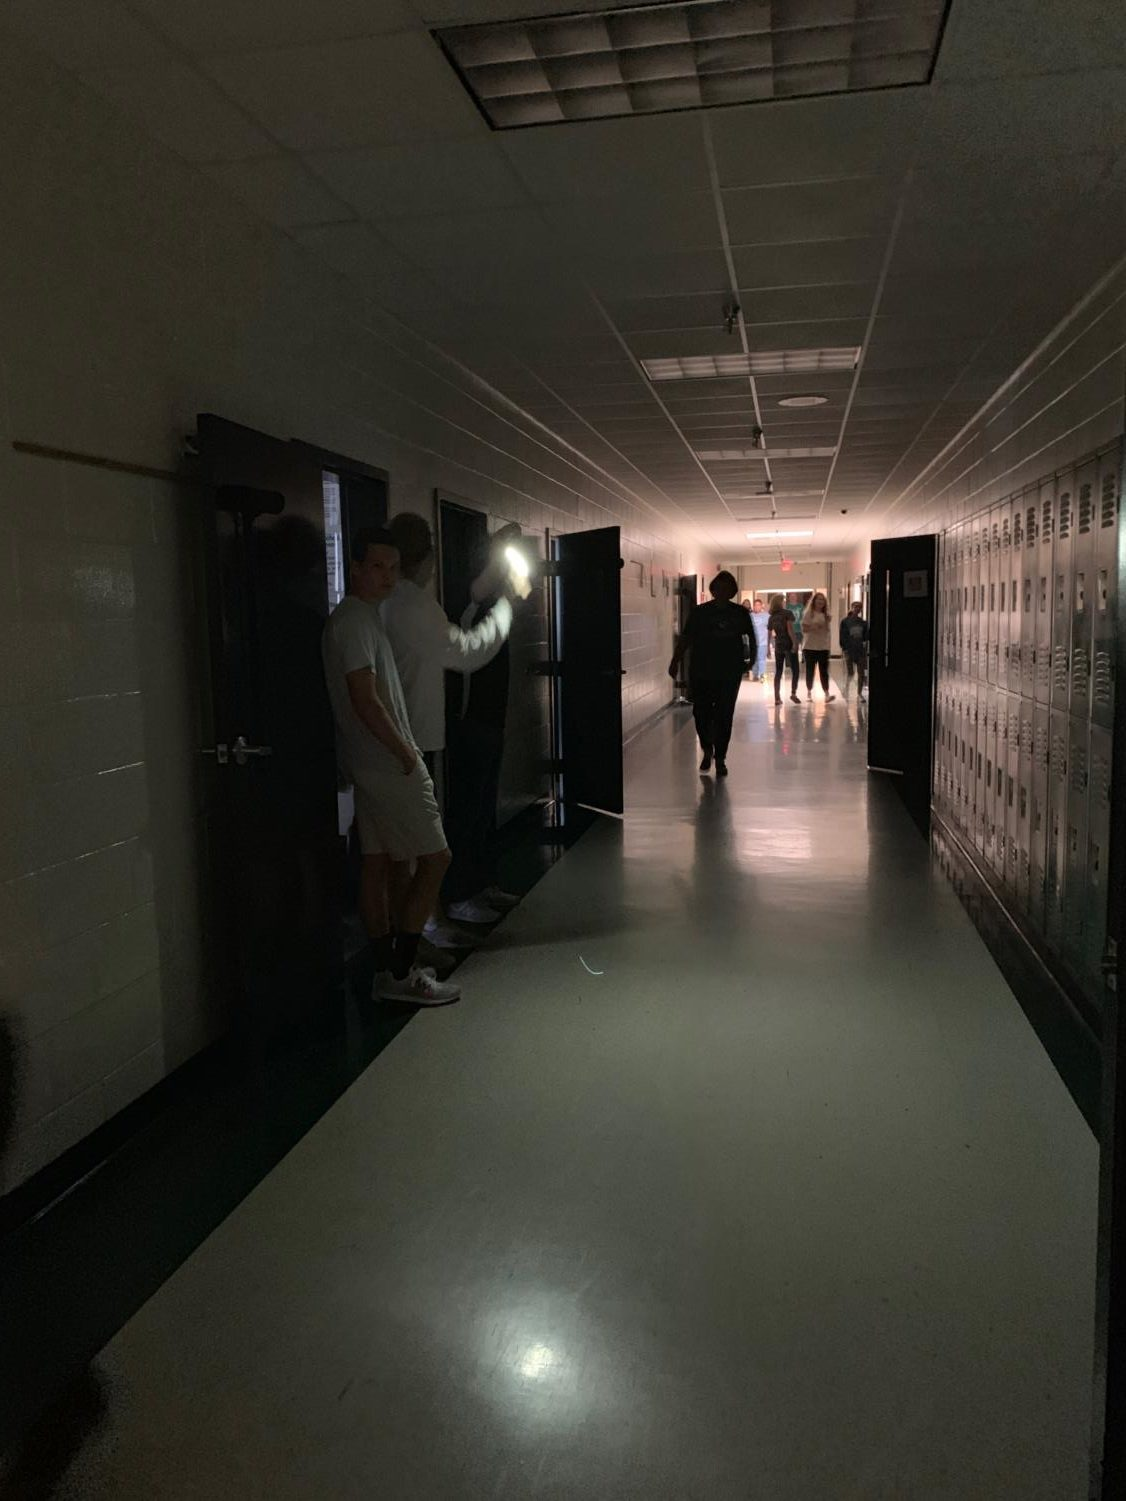 Brad Yarbrough using his phone flashlight to lighten up some of the hallway.